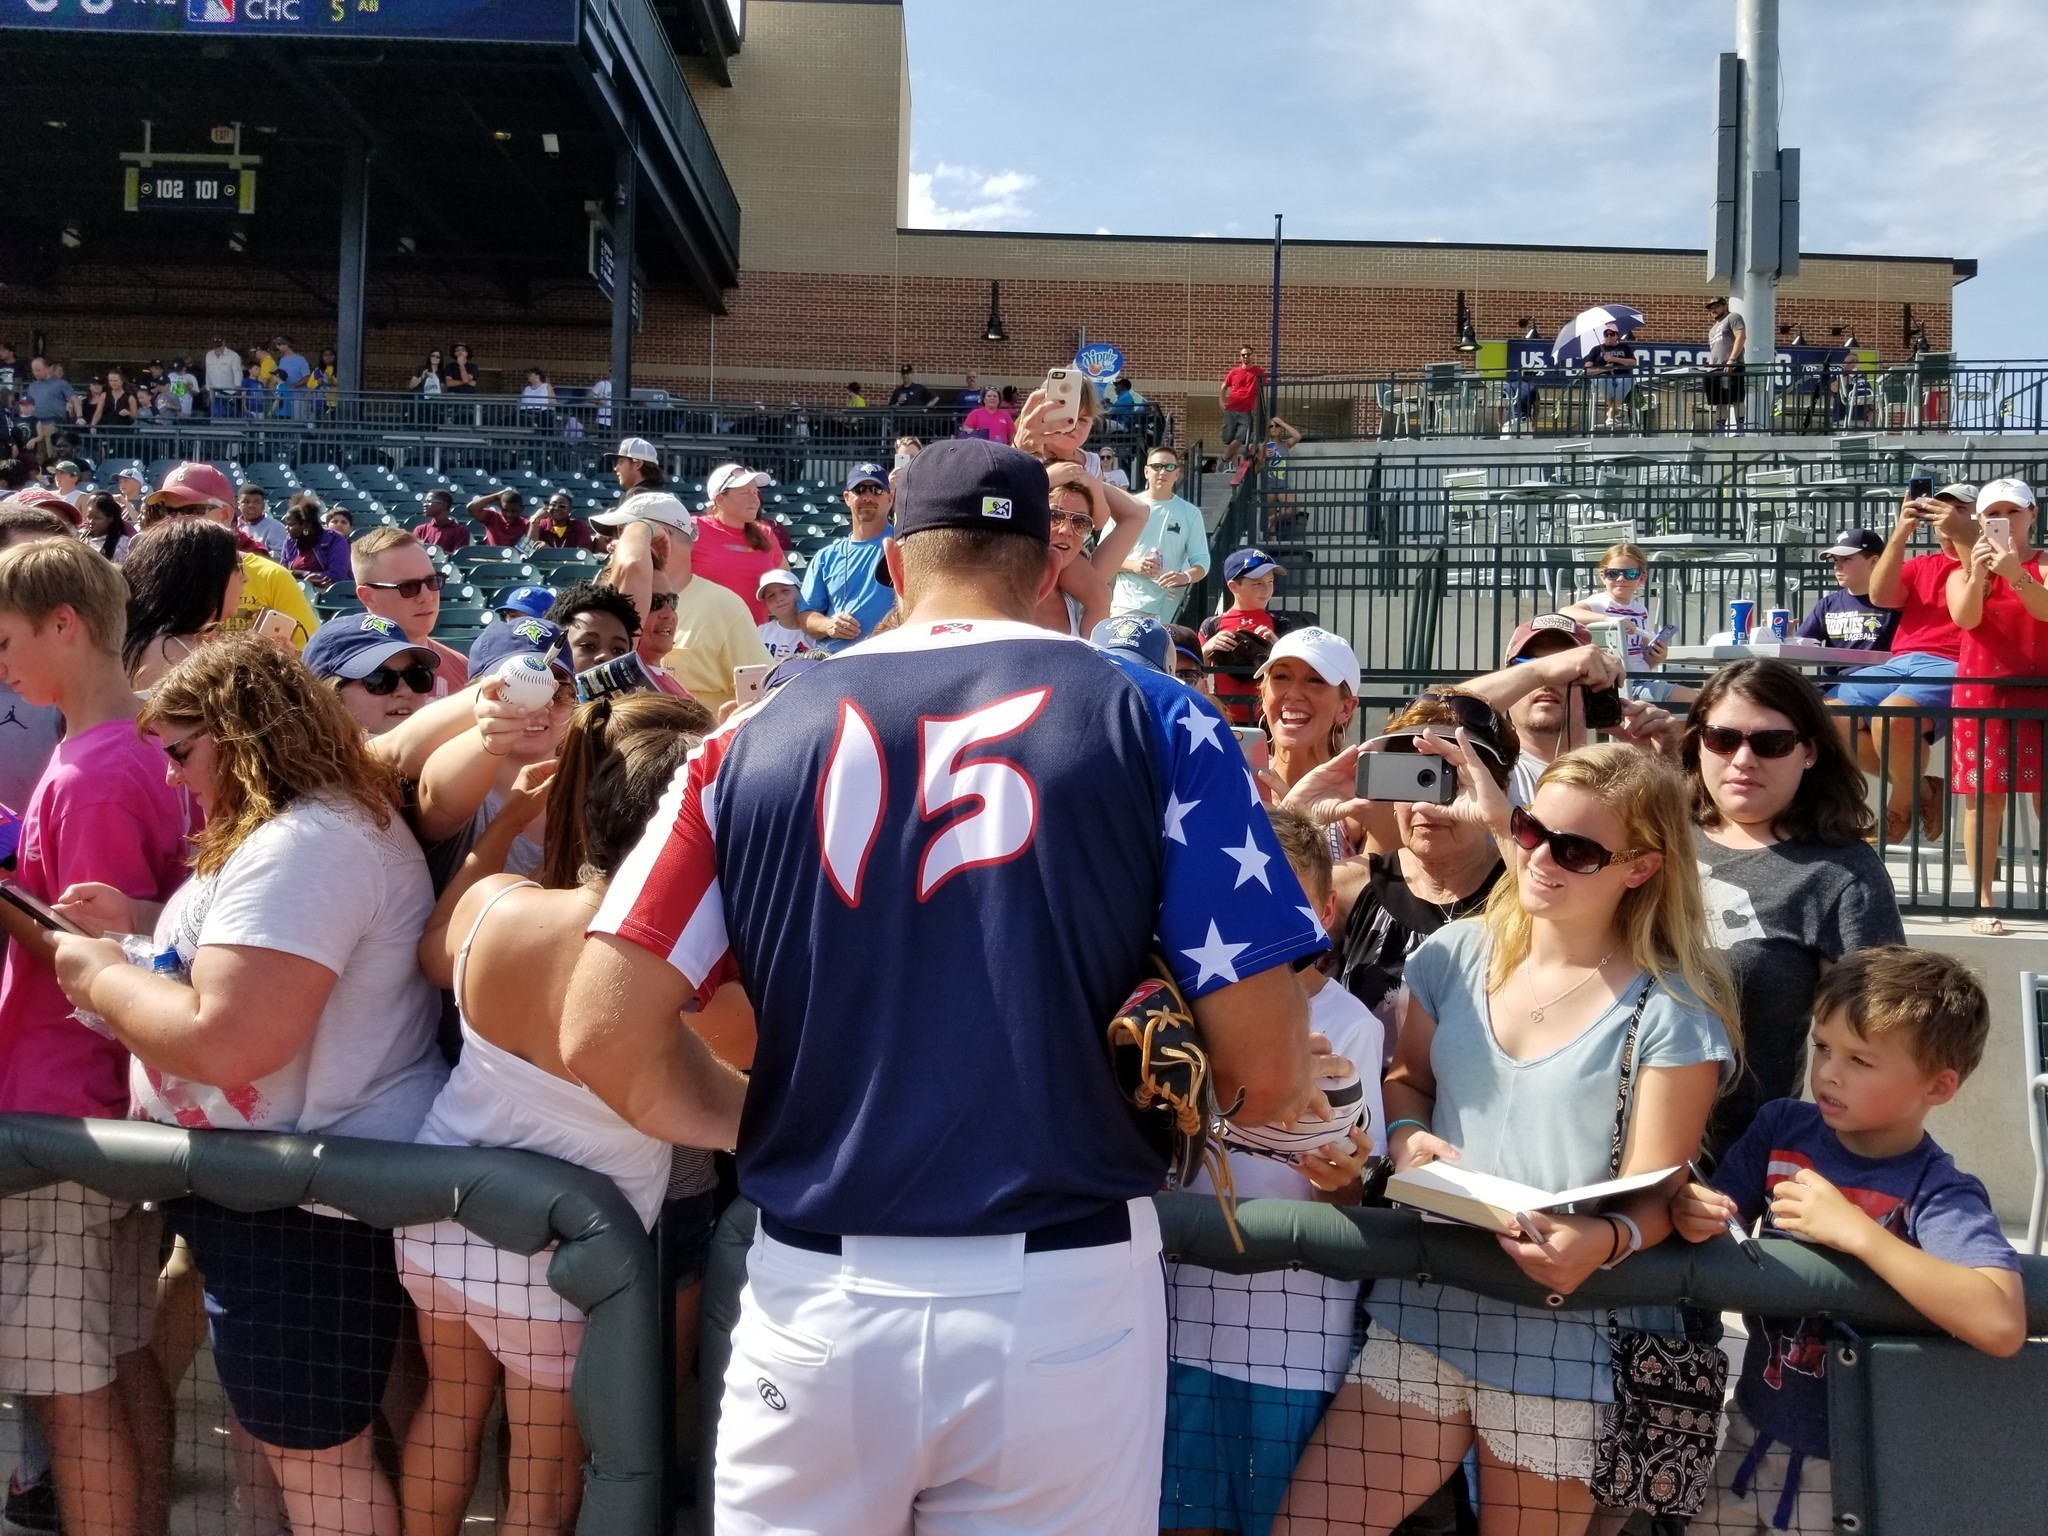 Os-sp-tim-tebow-mets-20170719